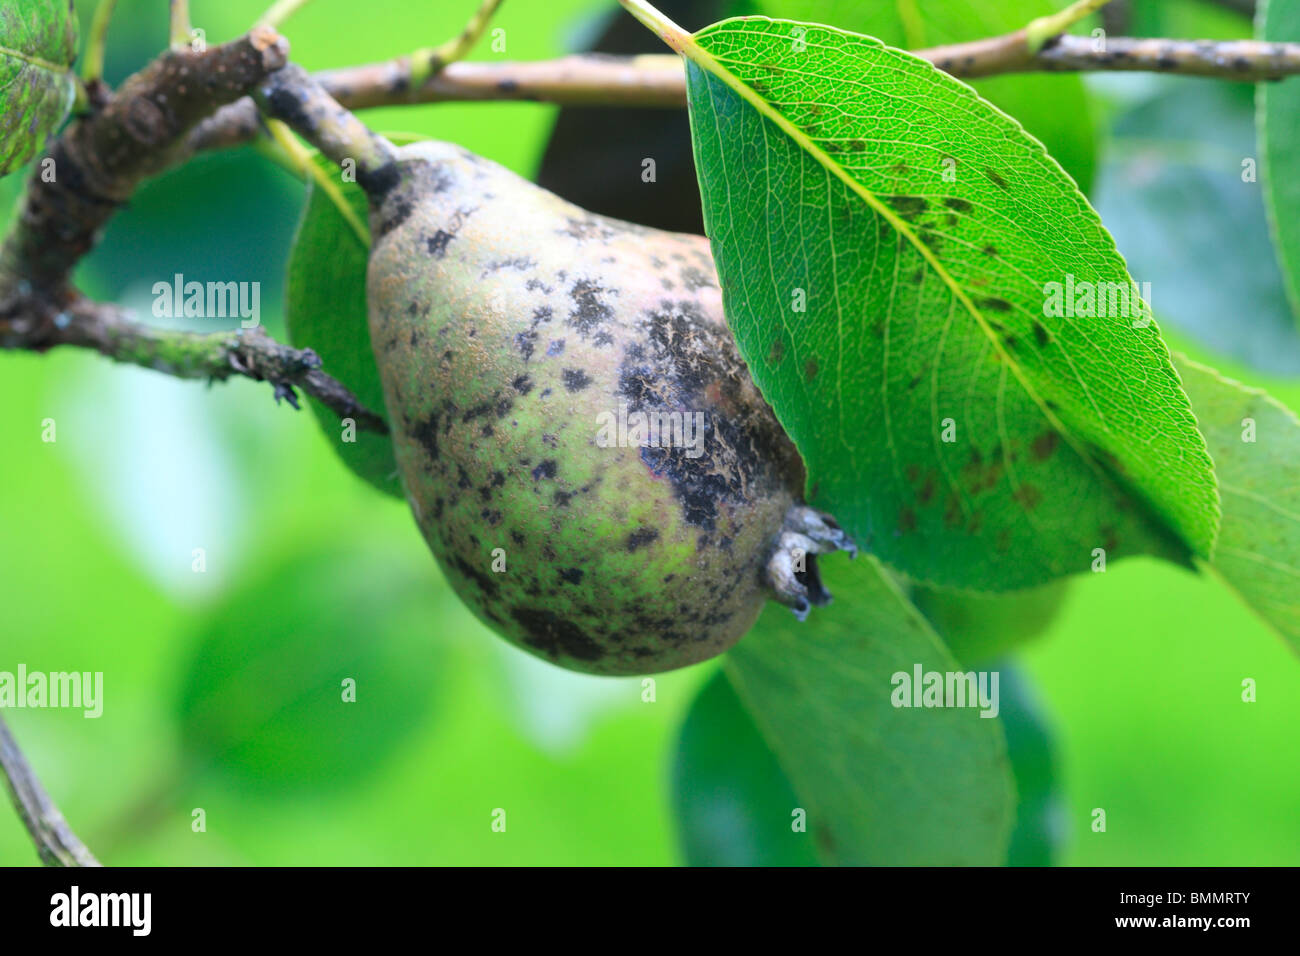 Scab Stock Photos & Scab Stock Images - Alamy